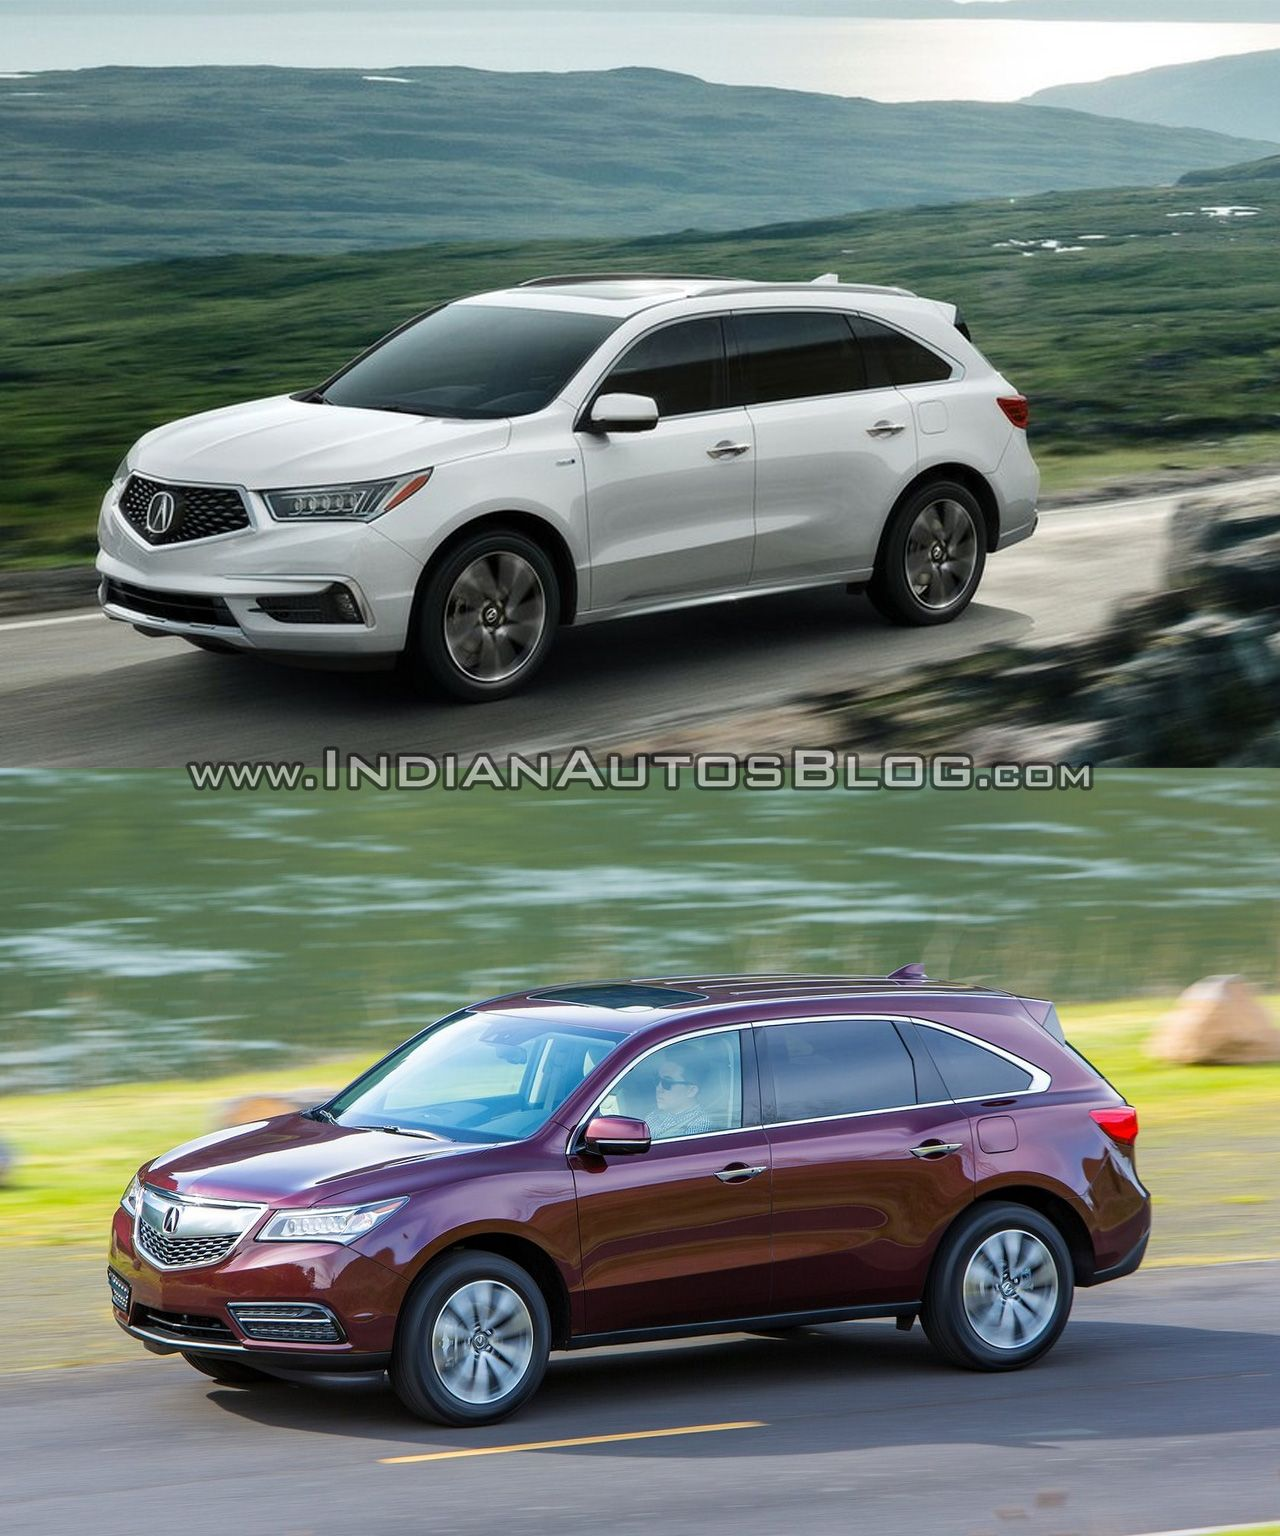 2017 Acura MDX Vs. Old Acura MDX - Old Vs. New